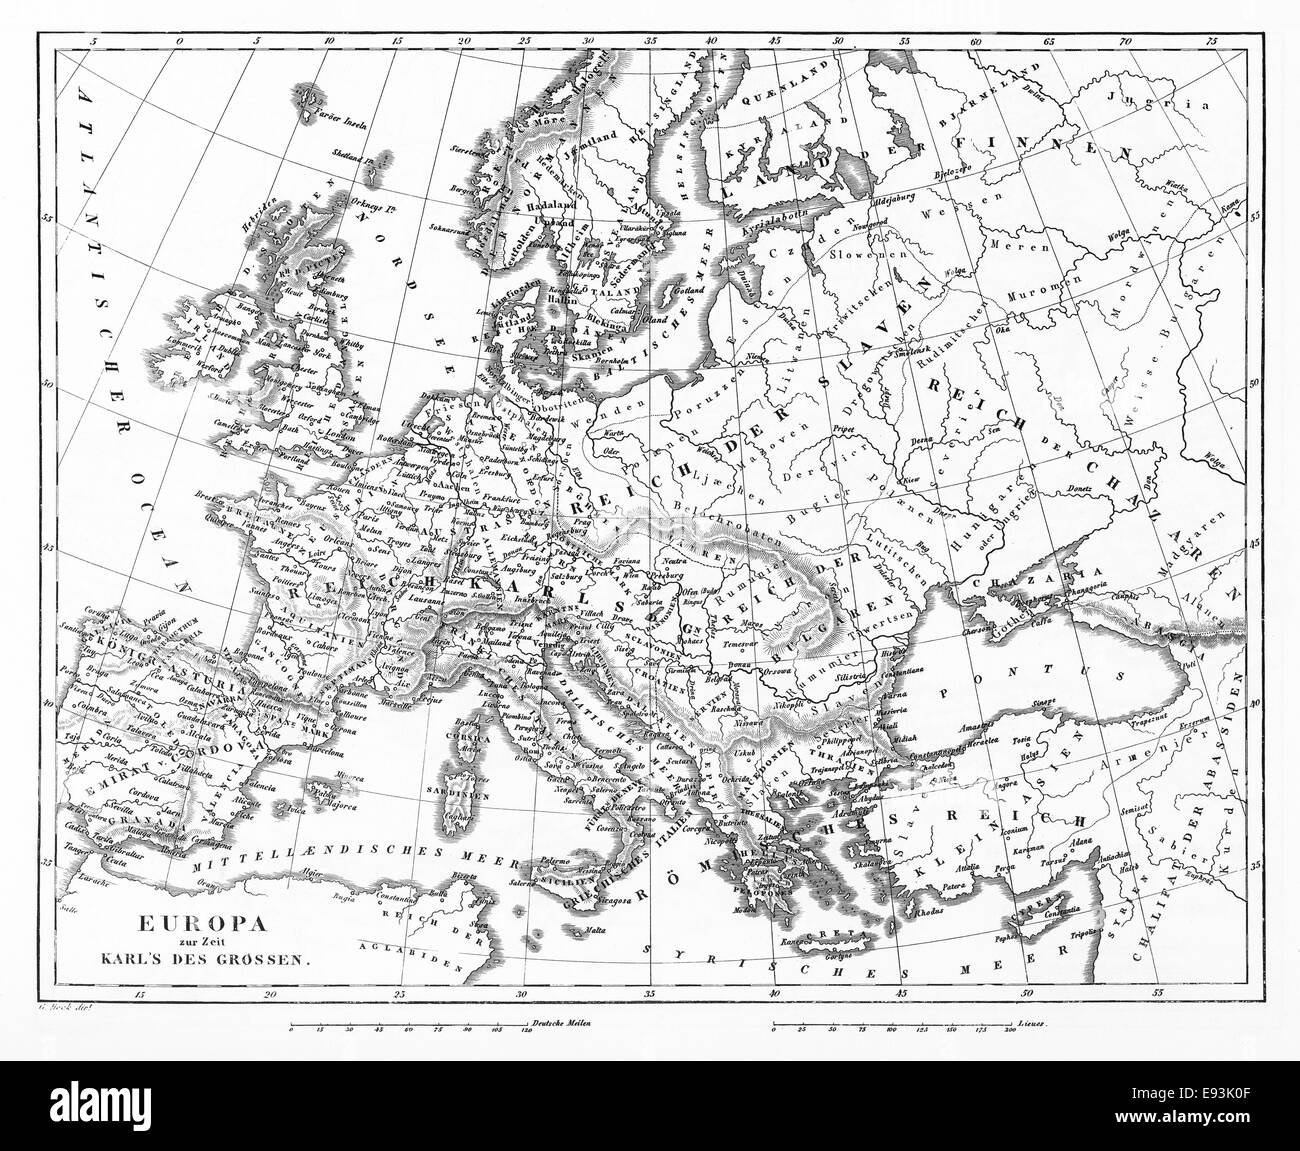 Map Of Europe Black And White Stock Photos Images Alamy